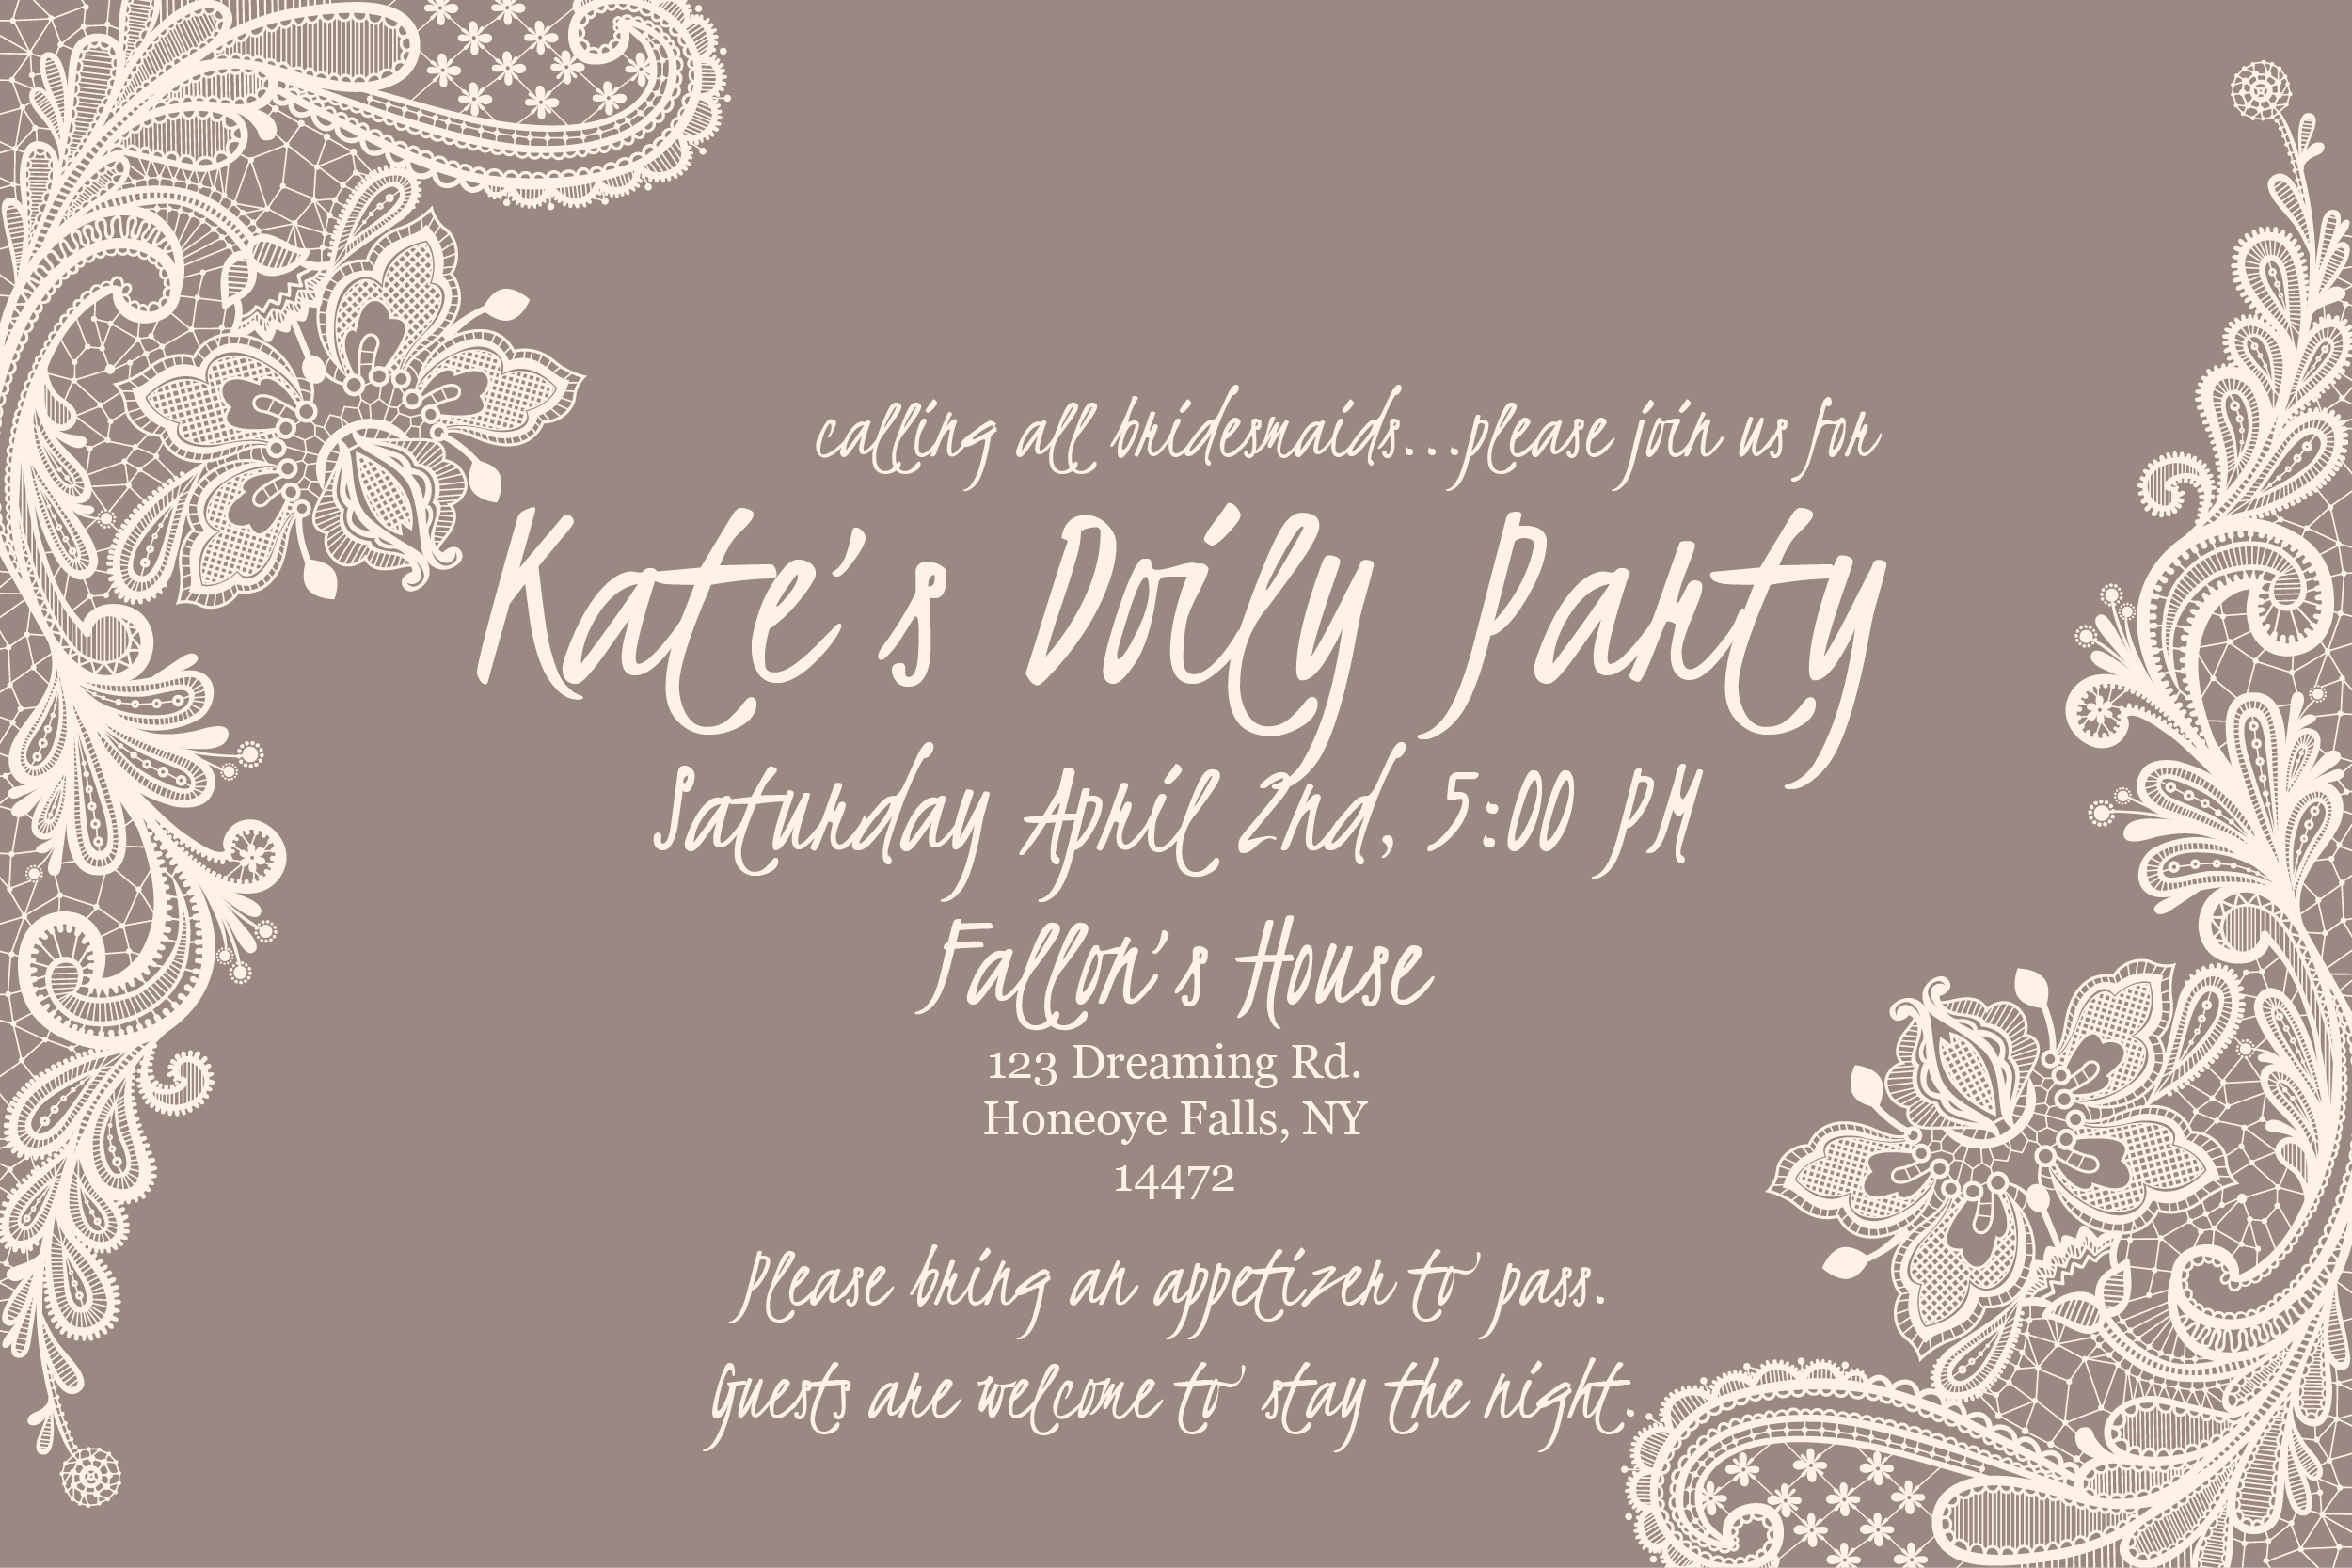 kate doily party_jlweb.png